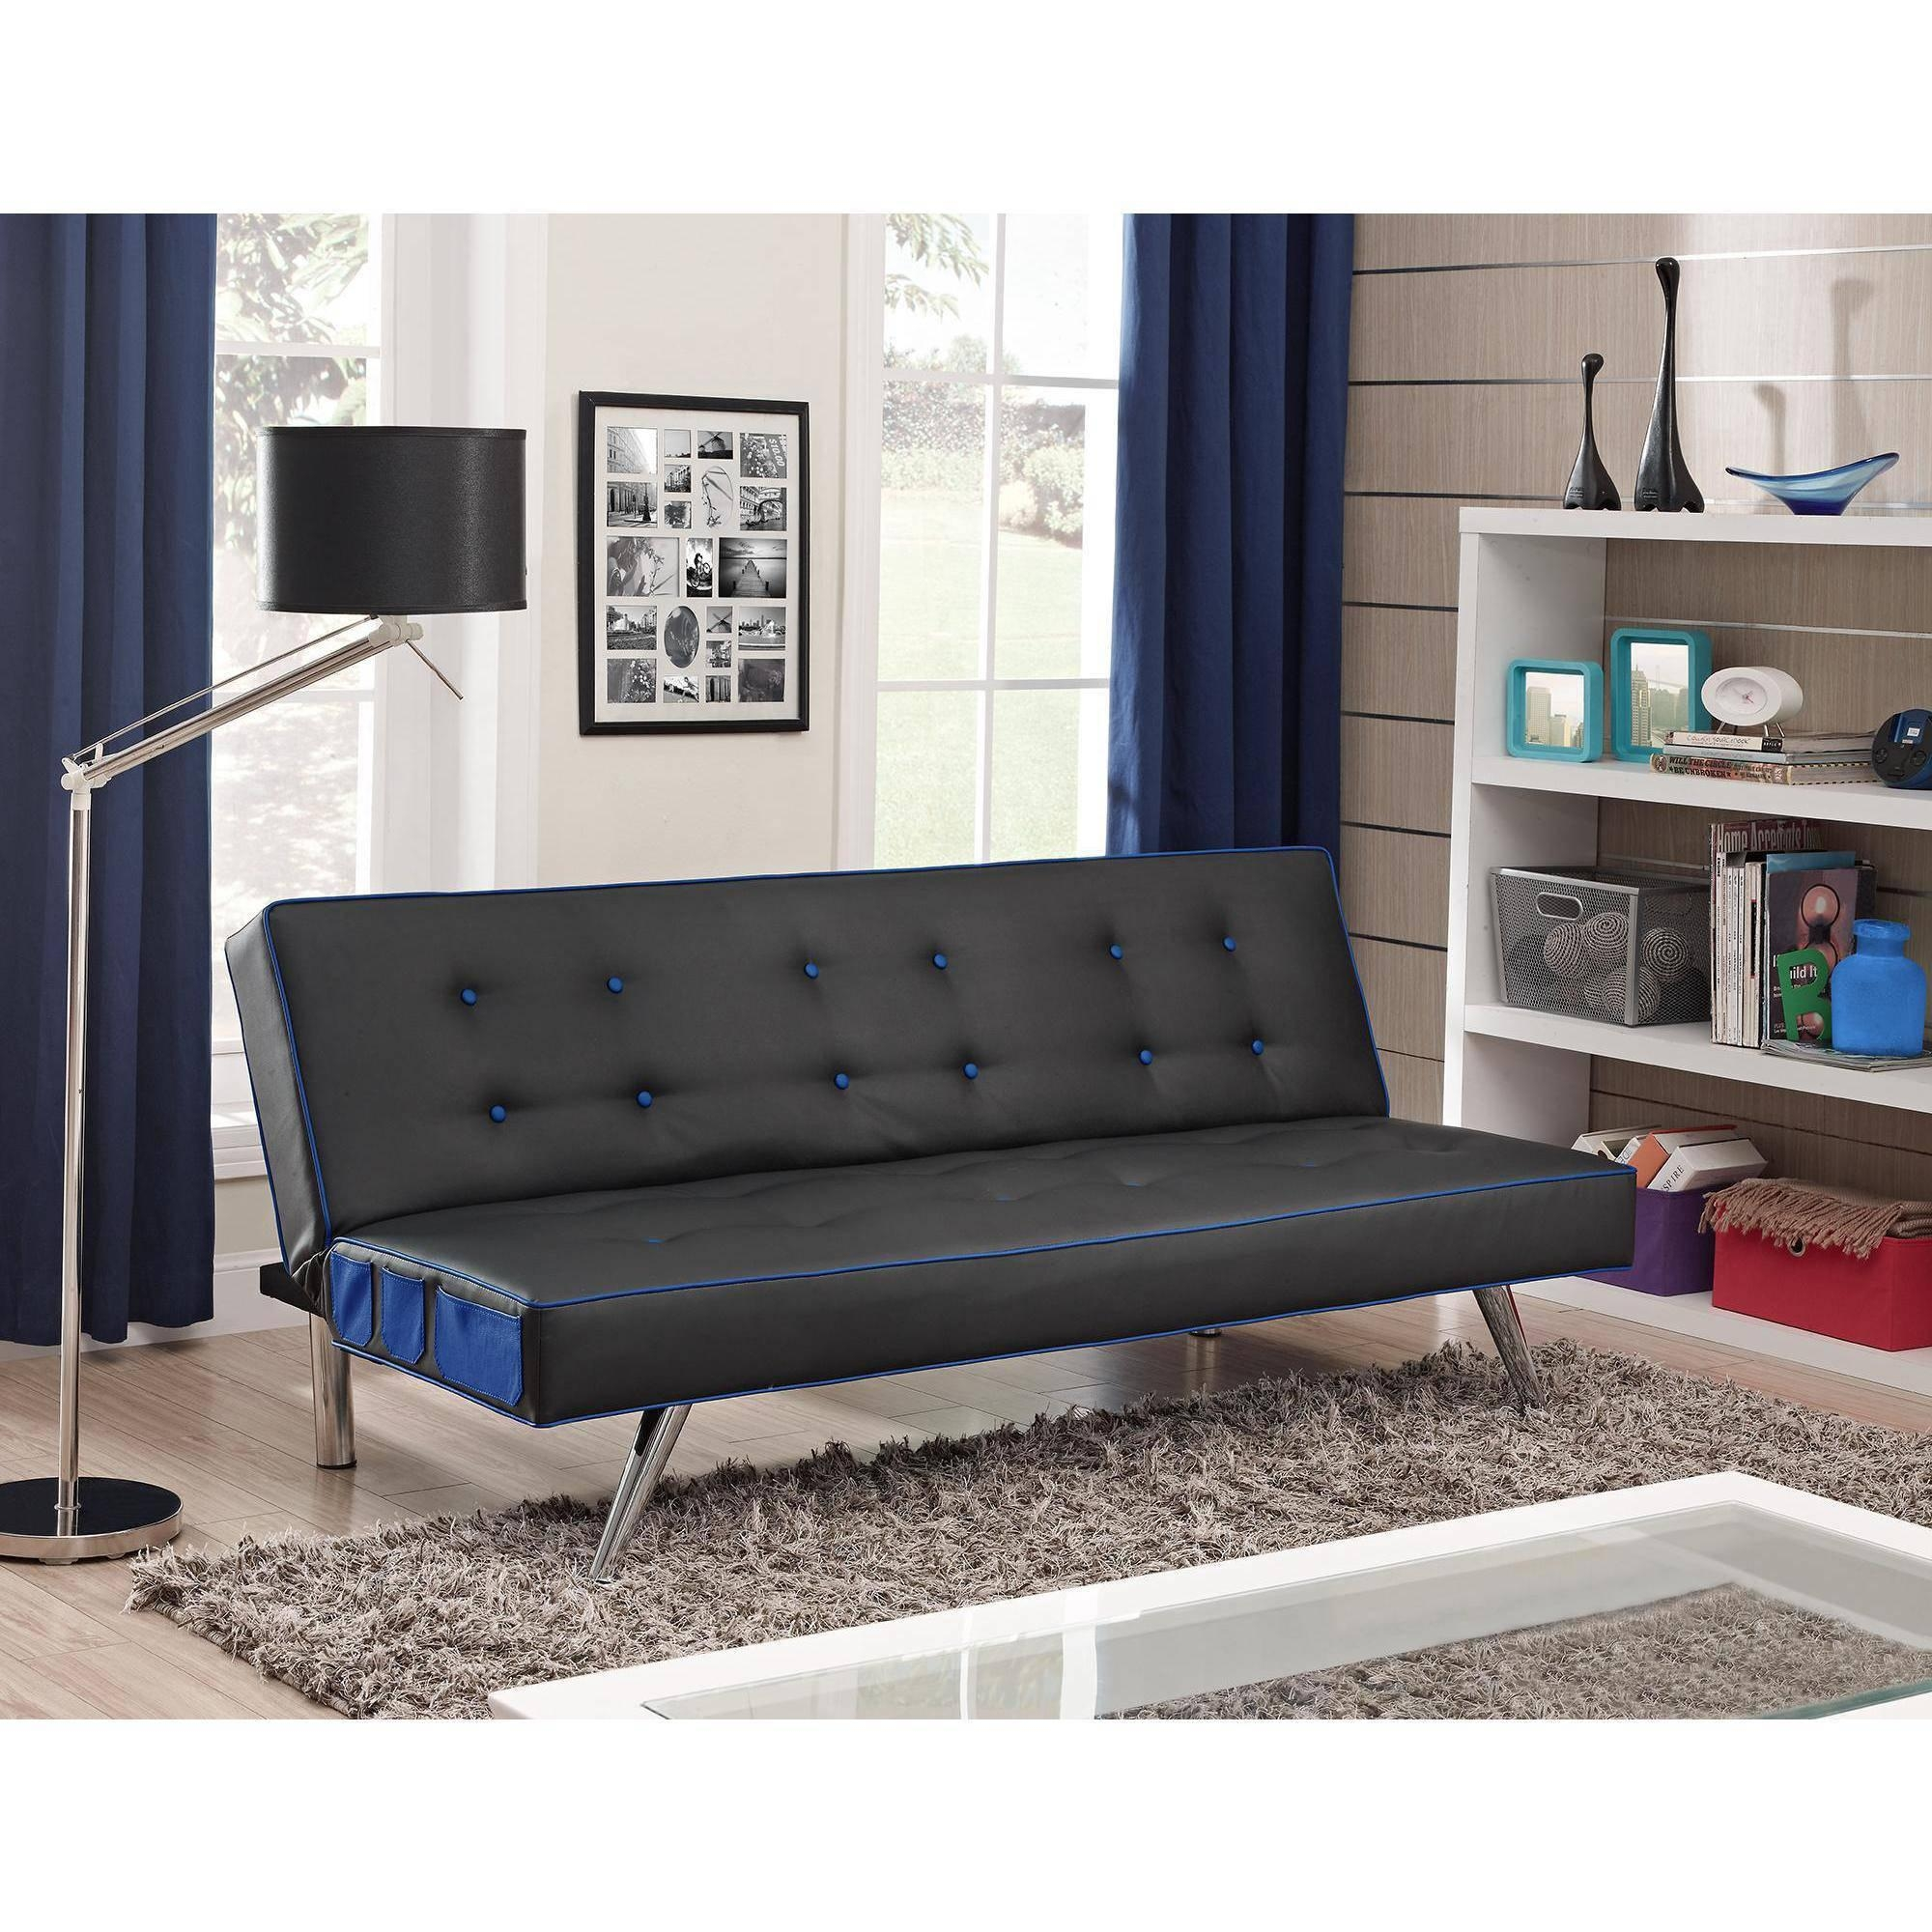 Furniture: Fabulous Faux Leather Futon For Living Room Decor With Regard To Faux Leather Futon Sofas (View 13 of 20)